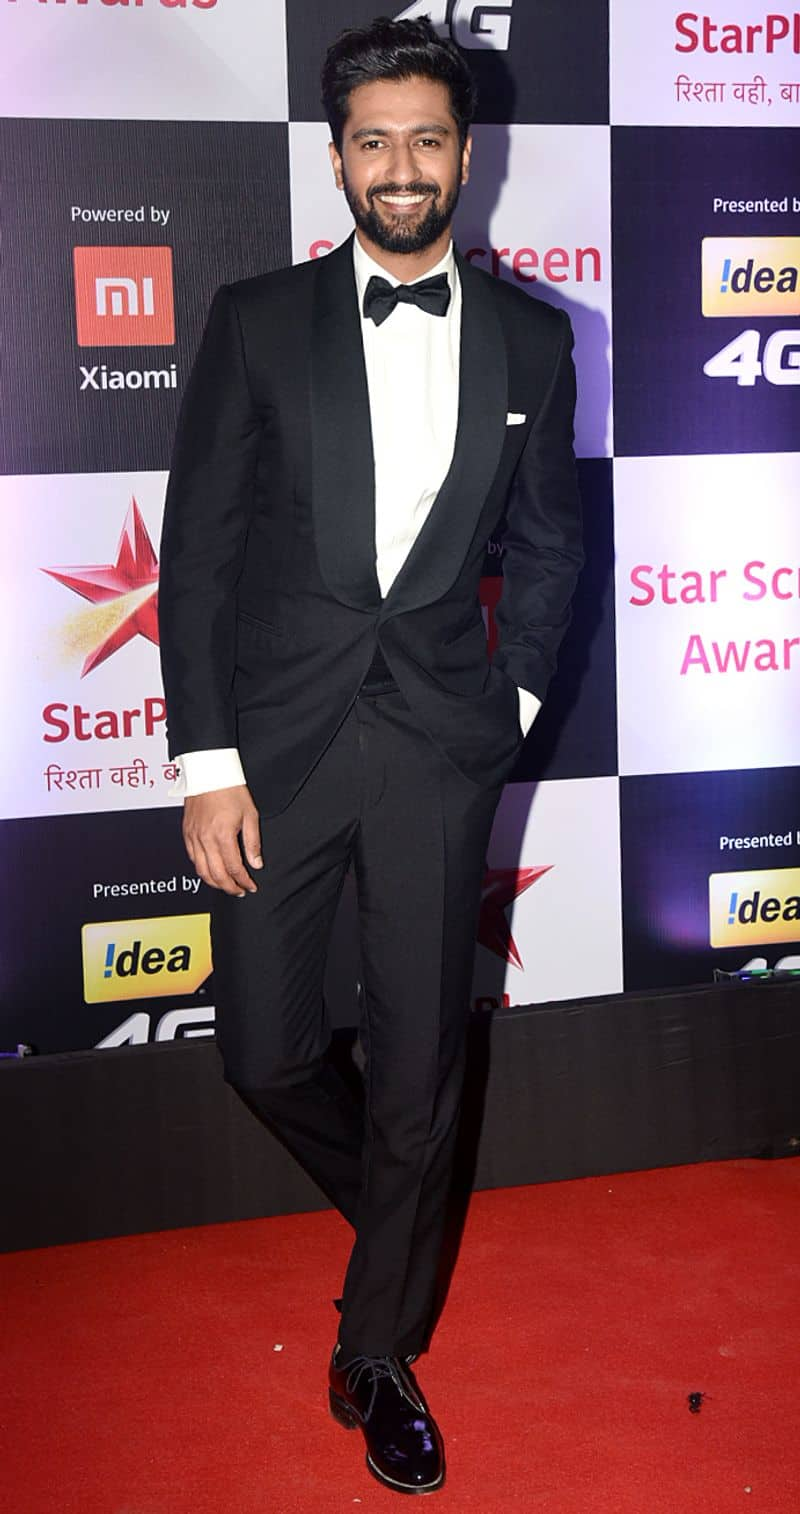 Bollywood's current heart throb Vicky Kaushal knows you can never go wrong in a black pant suit.